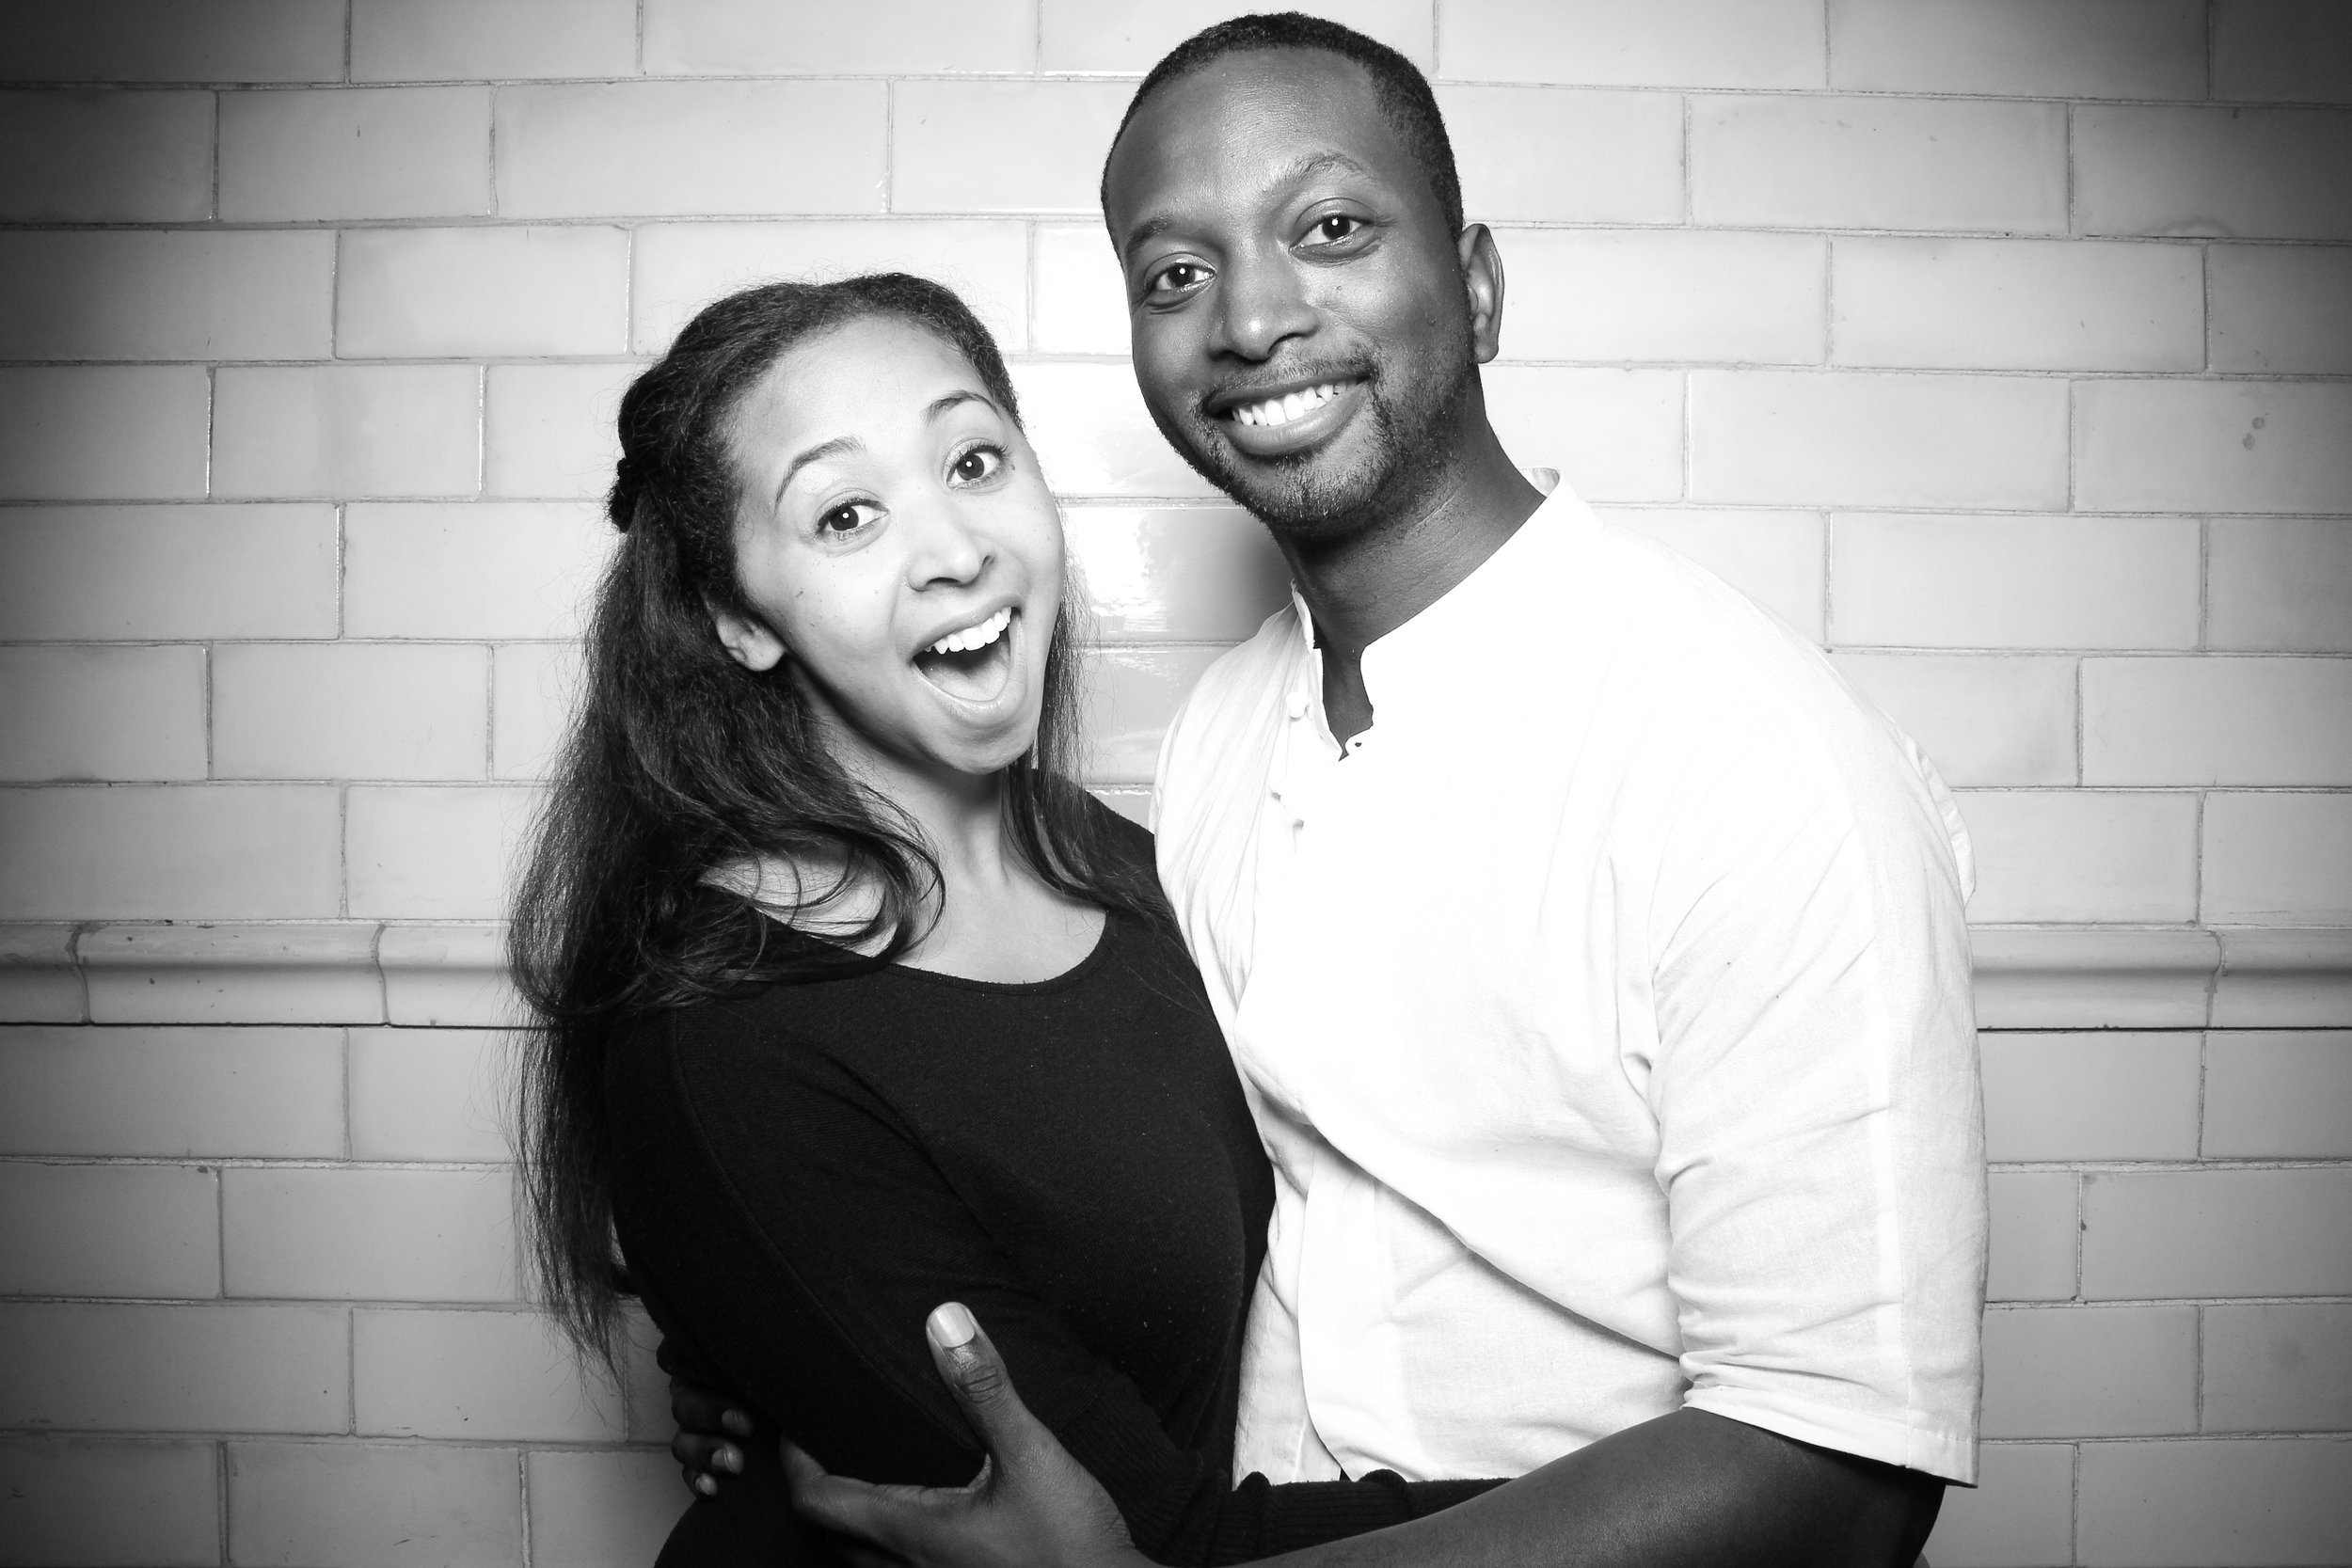 Firehouse_Chicago_Edgewater_Wedding_Reception_Photo_Booth_18.jpg